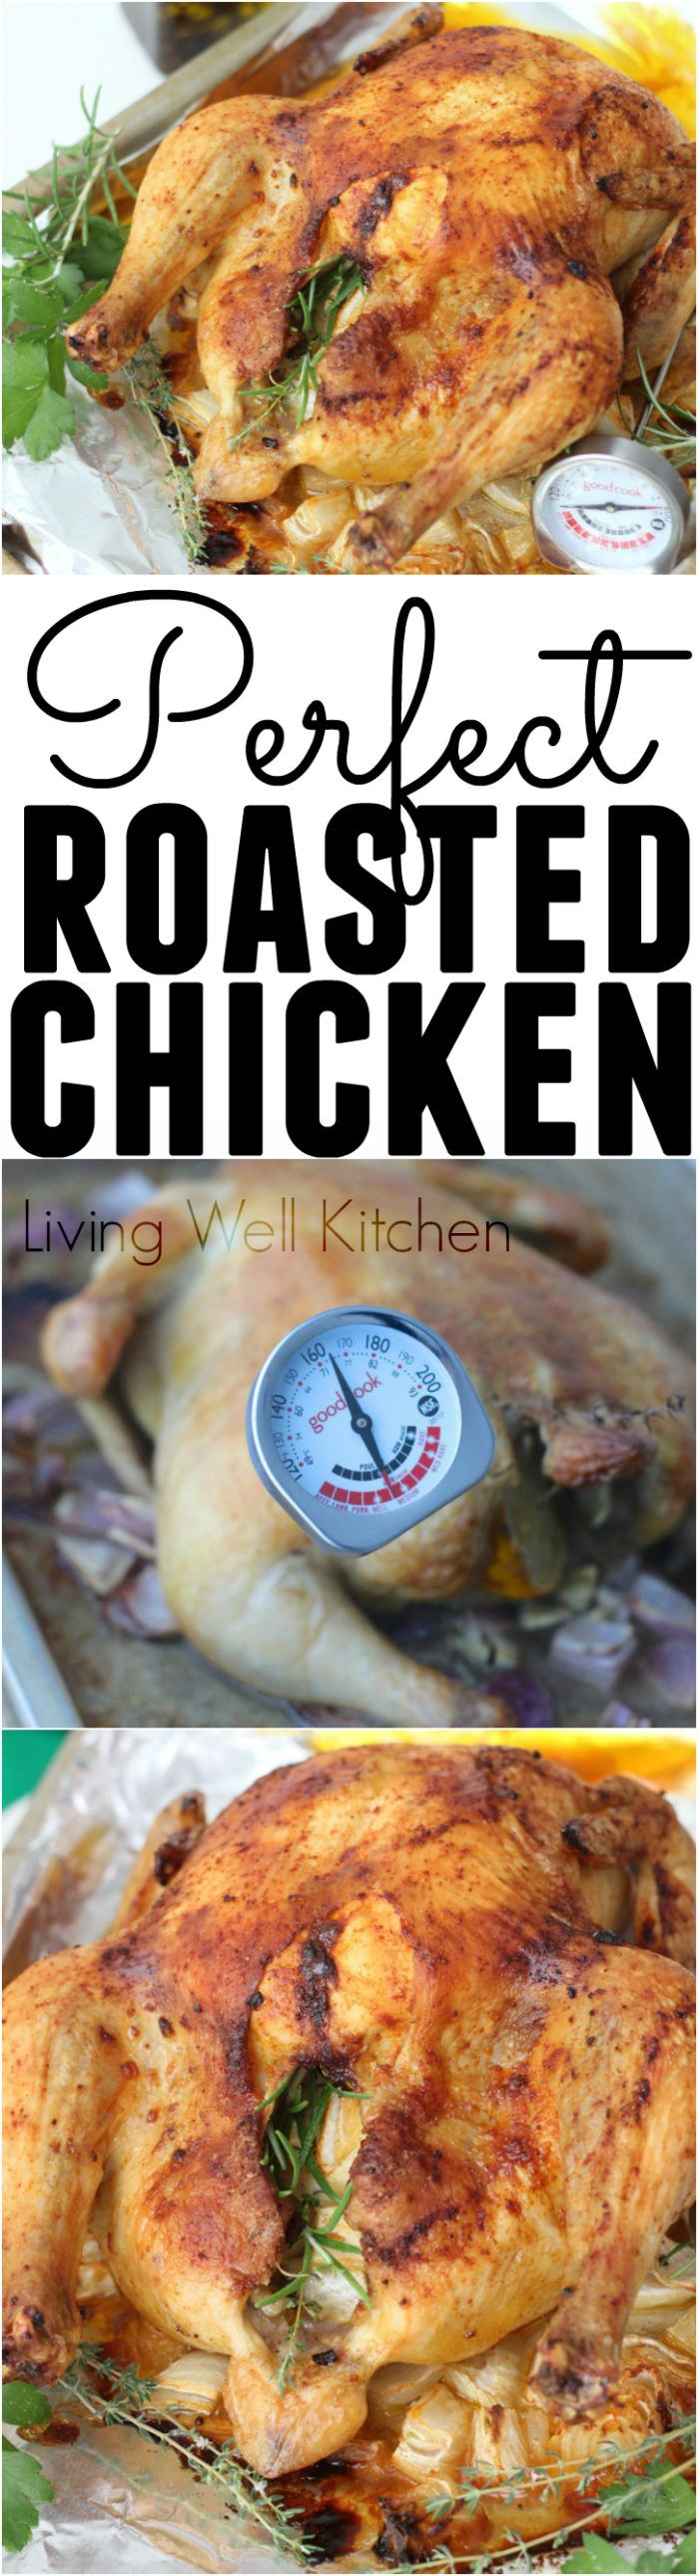 Every single detail you need to make the Perfect Roasted Chicken every single time! This recipe is fool-proof for making a whole chicken roasted perfectly in the oven. Quite possibly the tastiest way to enjoy chicken